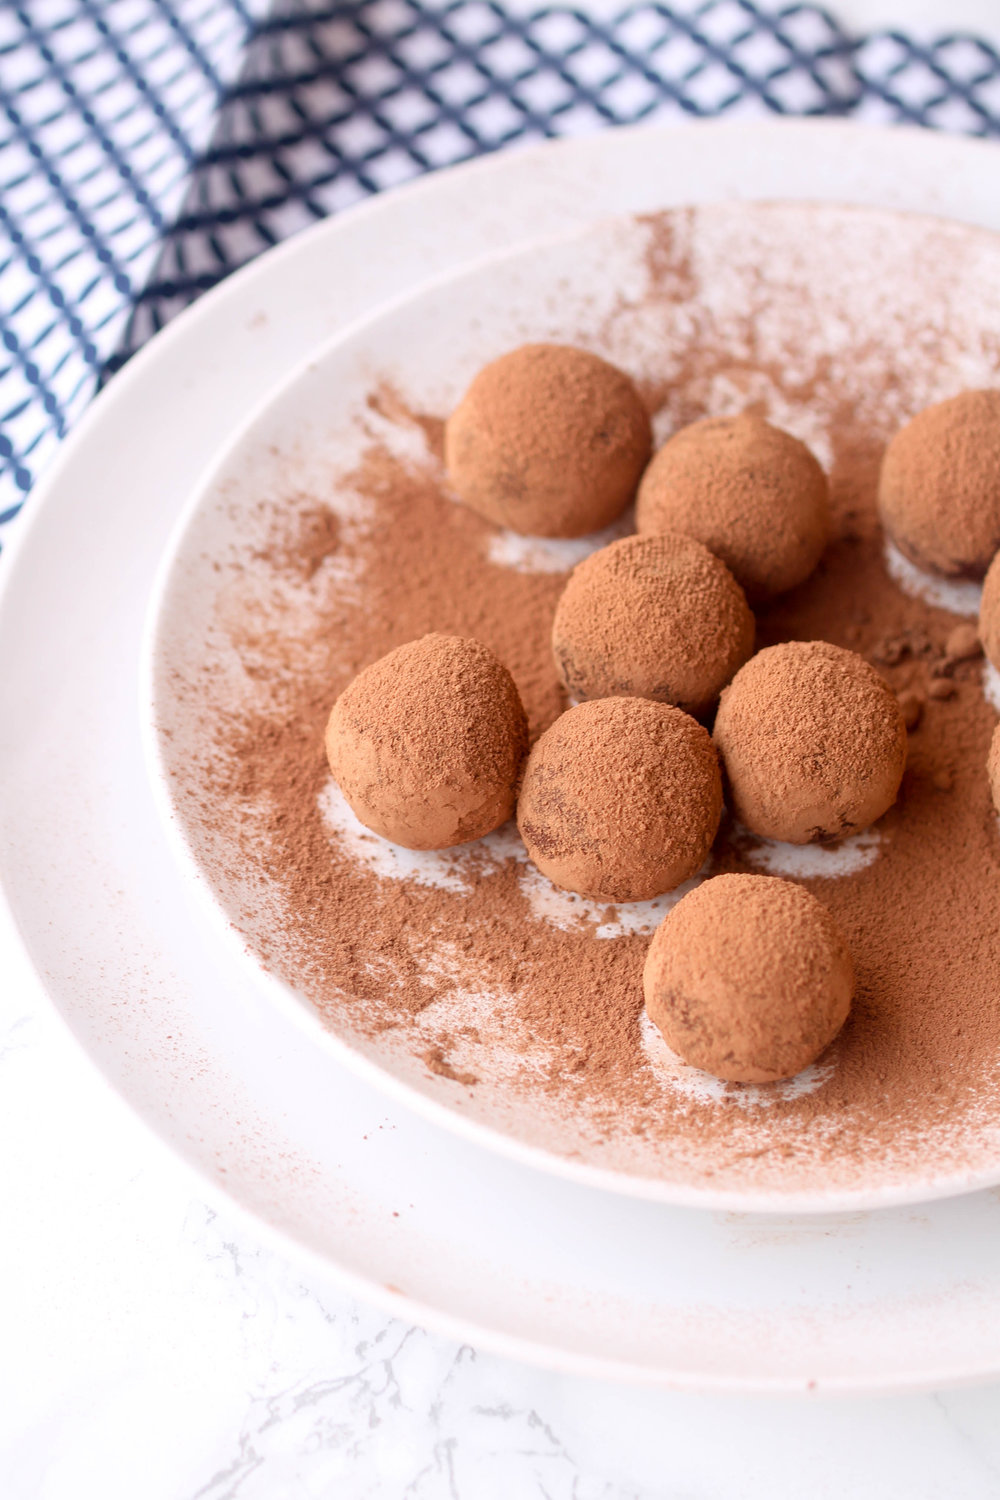 Healthy Chocolate Truffles are perfect bite-size dessert and healthier as it is made with cauliflower mashed potatoes. It is naturally gluten-free and vegan-friendly.